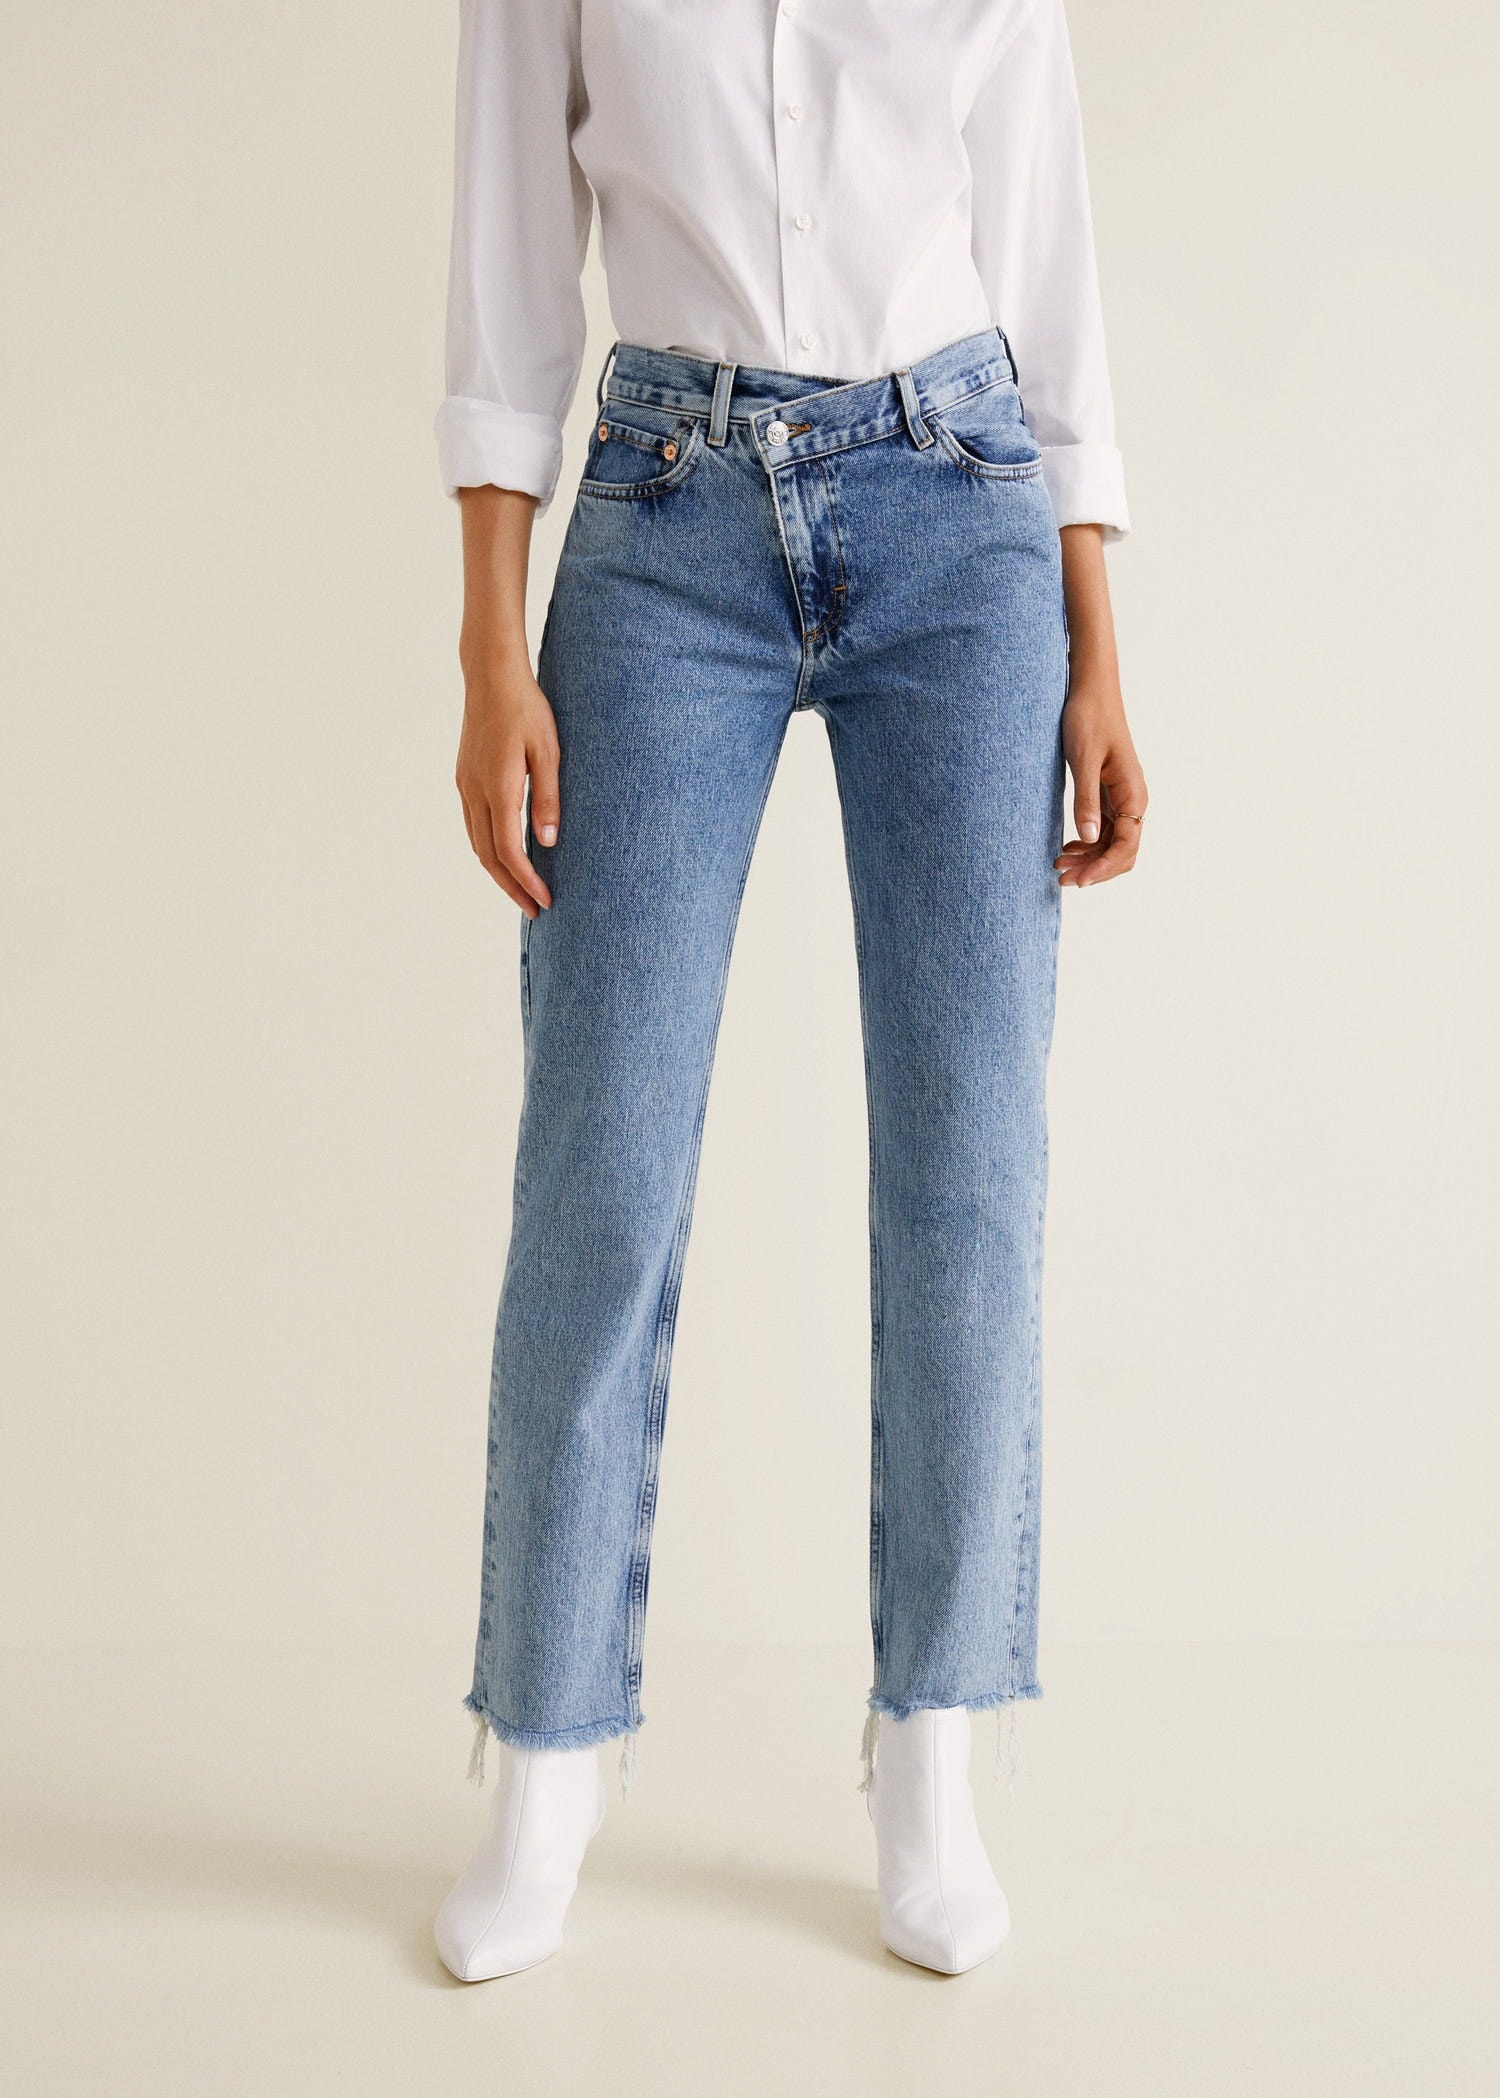 Unexpected Denim Pieces You ll Want To Add To Your Fall Wardrobe